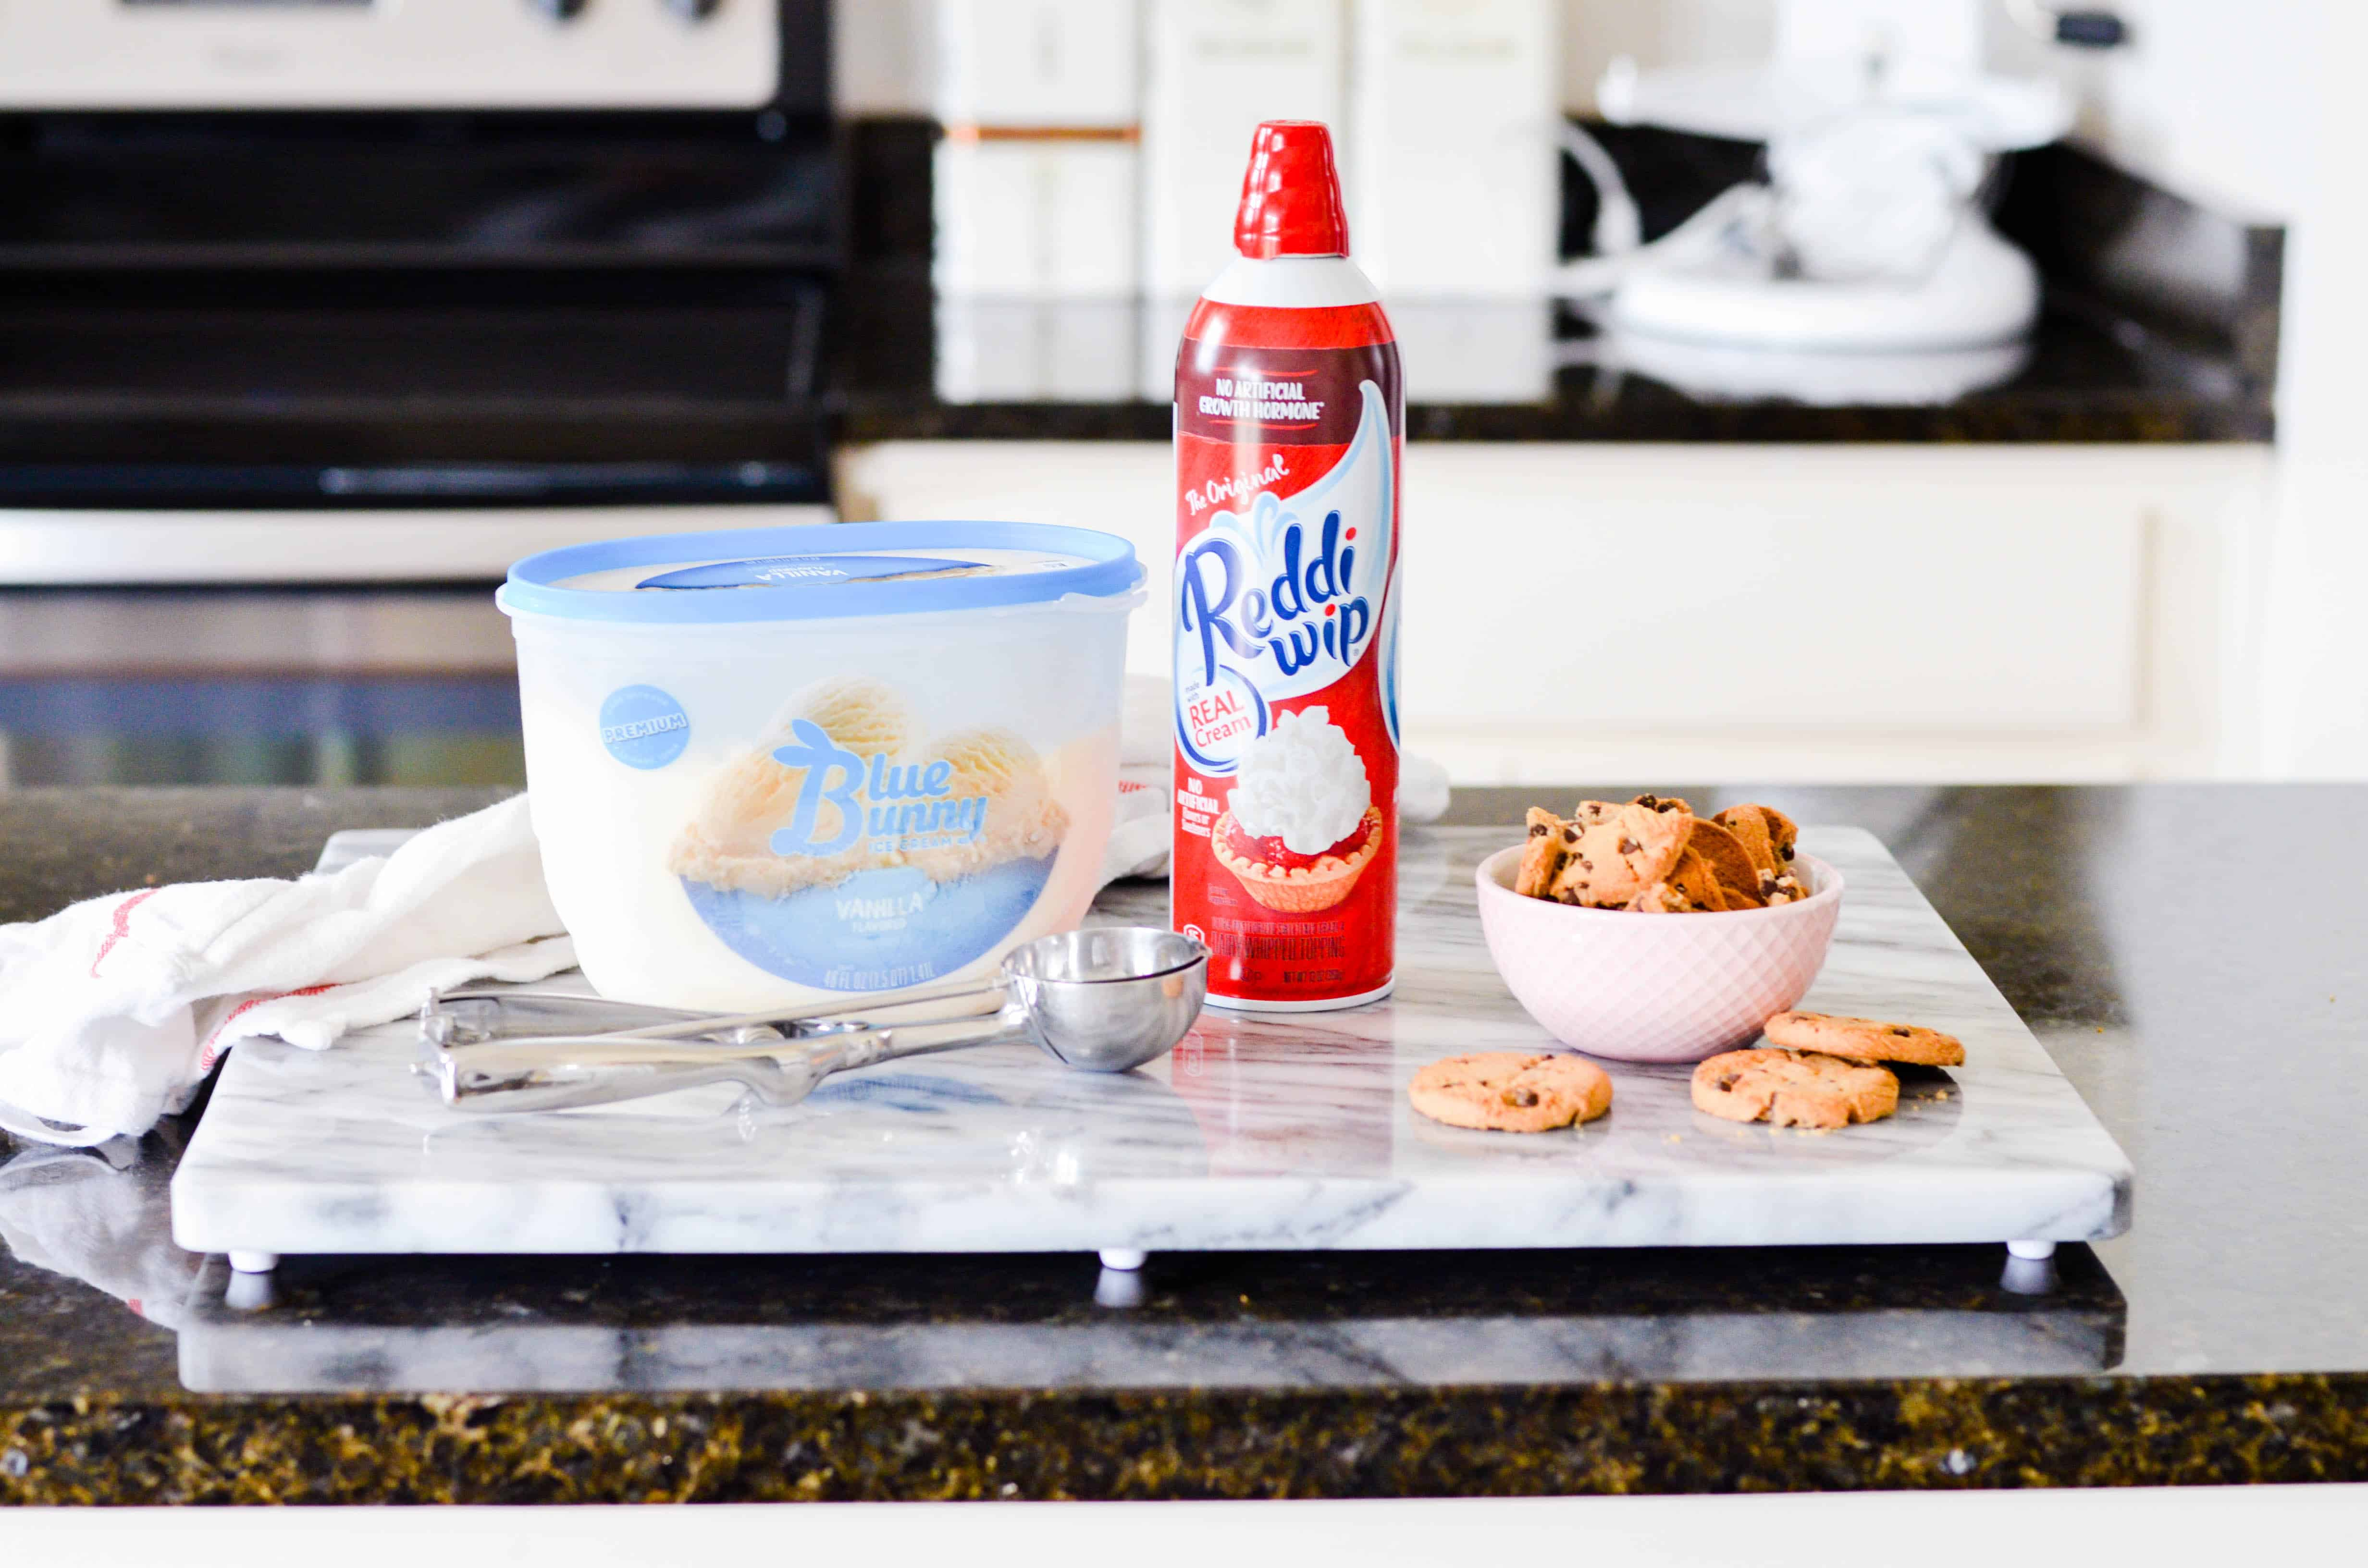 Have you seen those crazy milkshakes popping up all over the internet? This Crazy Chocolate Chip Cookie Sundae is even better, because you can make it at home!